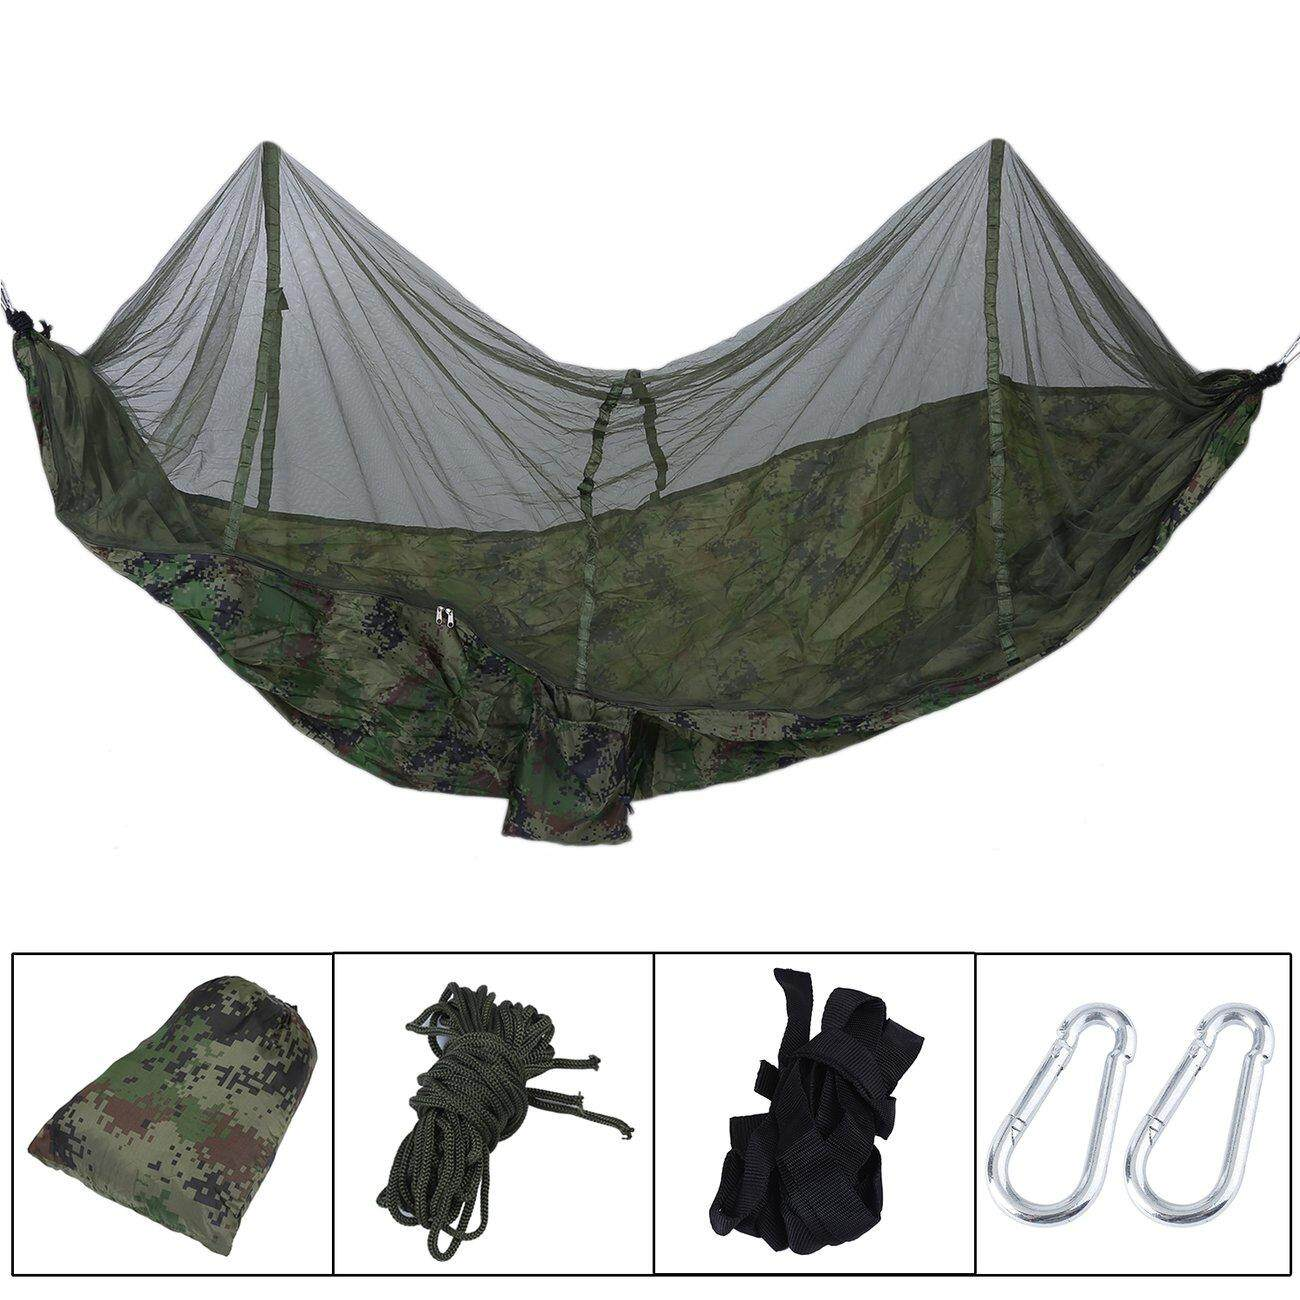 aed8b5255891 Hot Deals 260x130cm Outdoor Camping Sleeping Hammock Hanging Bed Tent With  Mosquito Net